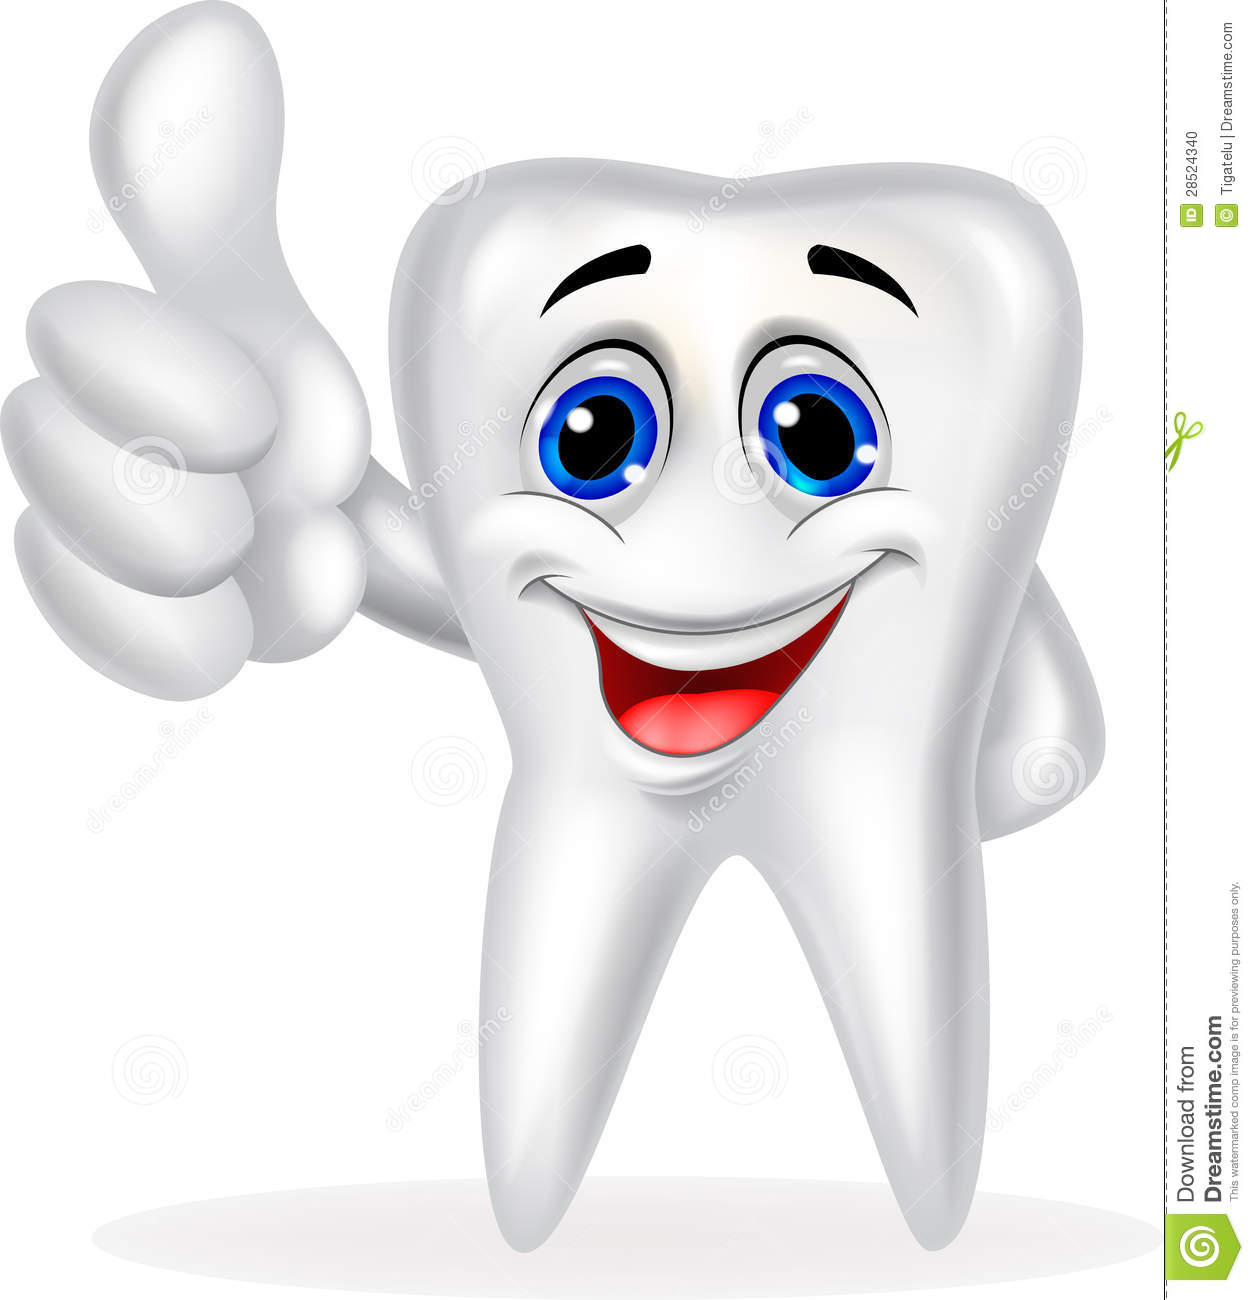 Tooth Cartoon With Thumb Up Stock Photo - Image: 28524340